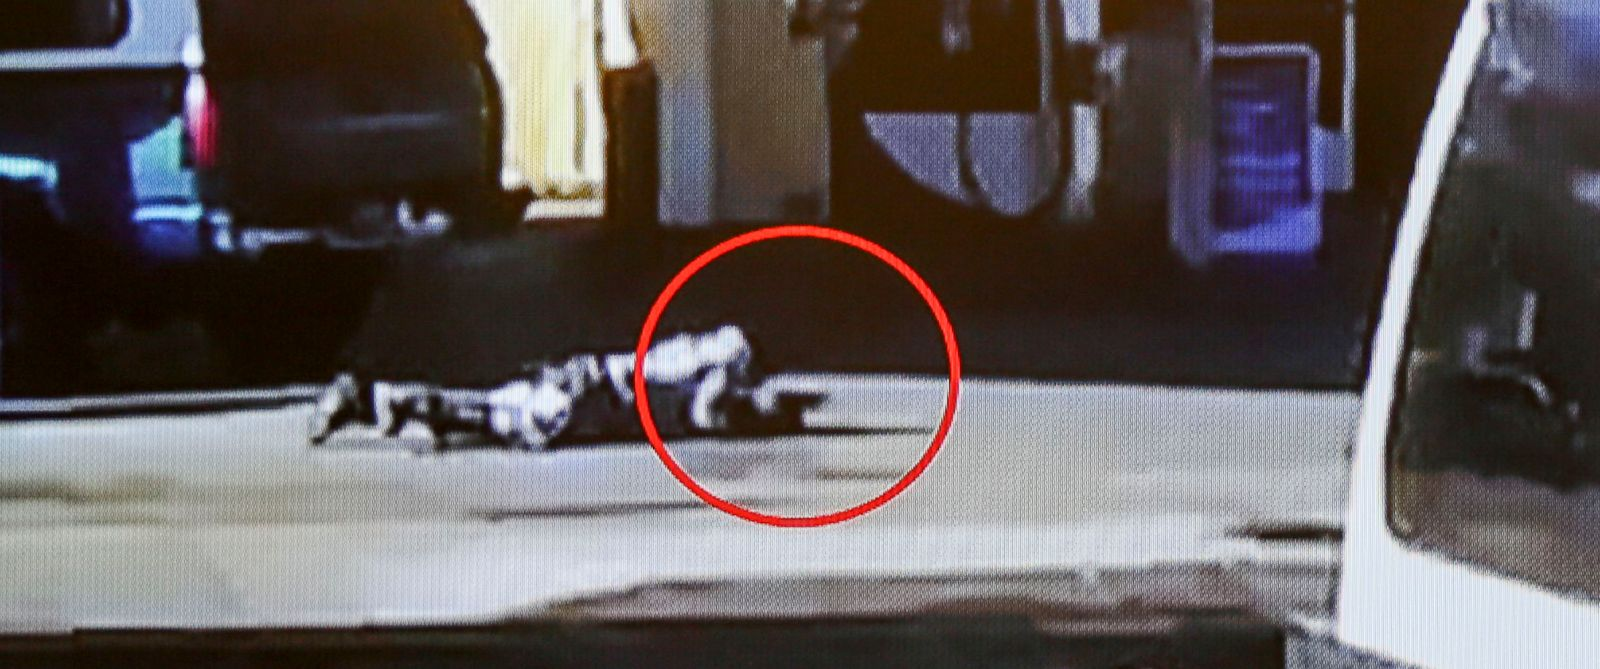 PHOTO: In this image made from security video footage provided by the Los Angeles County Sheriff, Nicholas Robertson is stretched out on the ground with a gun in his hand after he was shot by Los Angeles deputies, Dec. 12, 2015 in Lynwood, Calif.